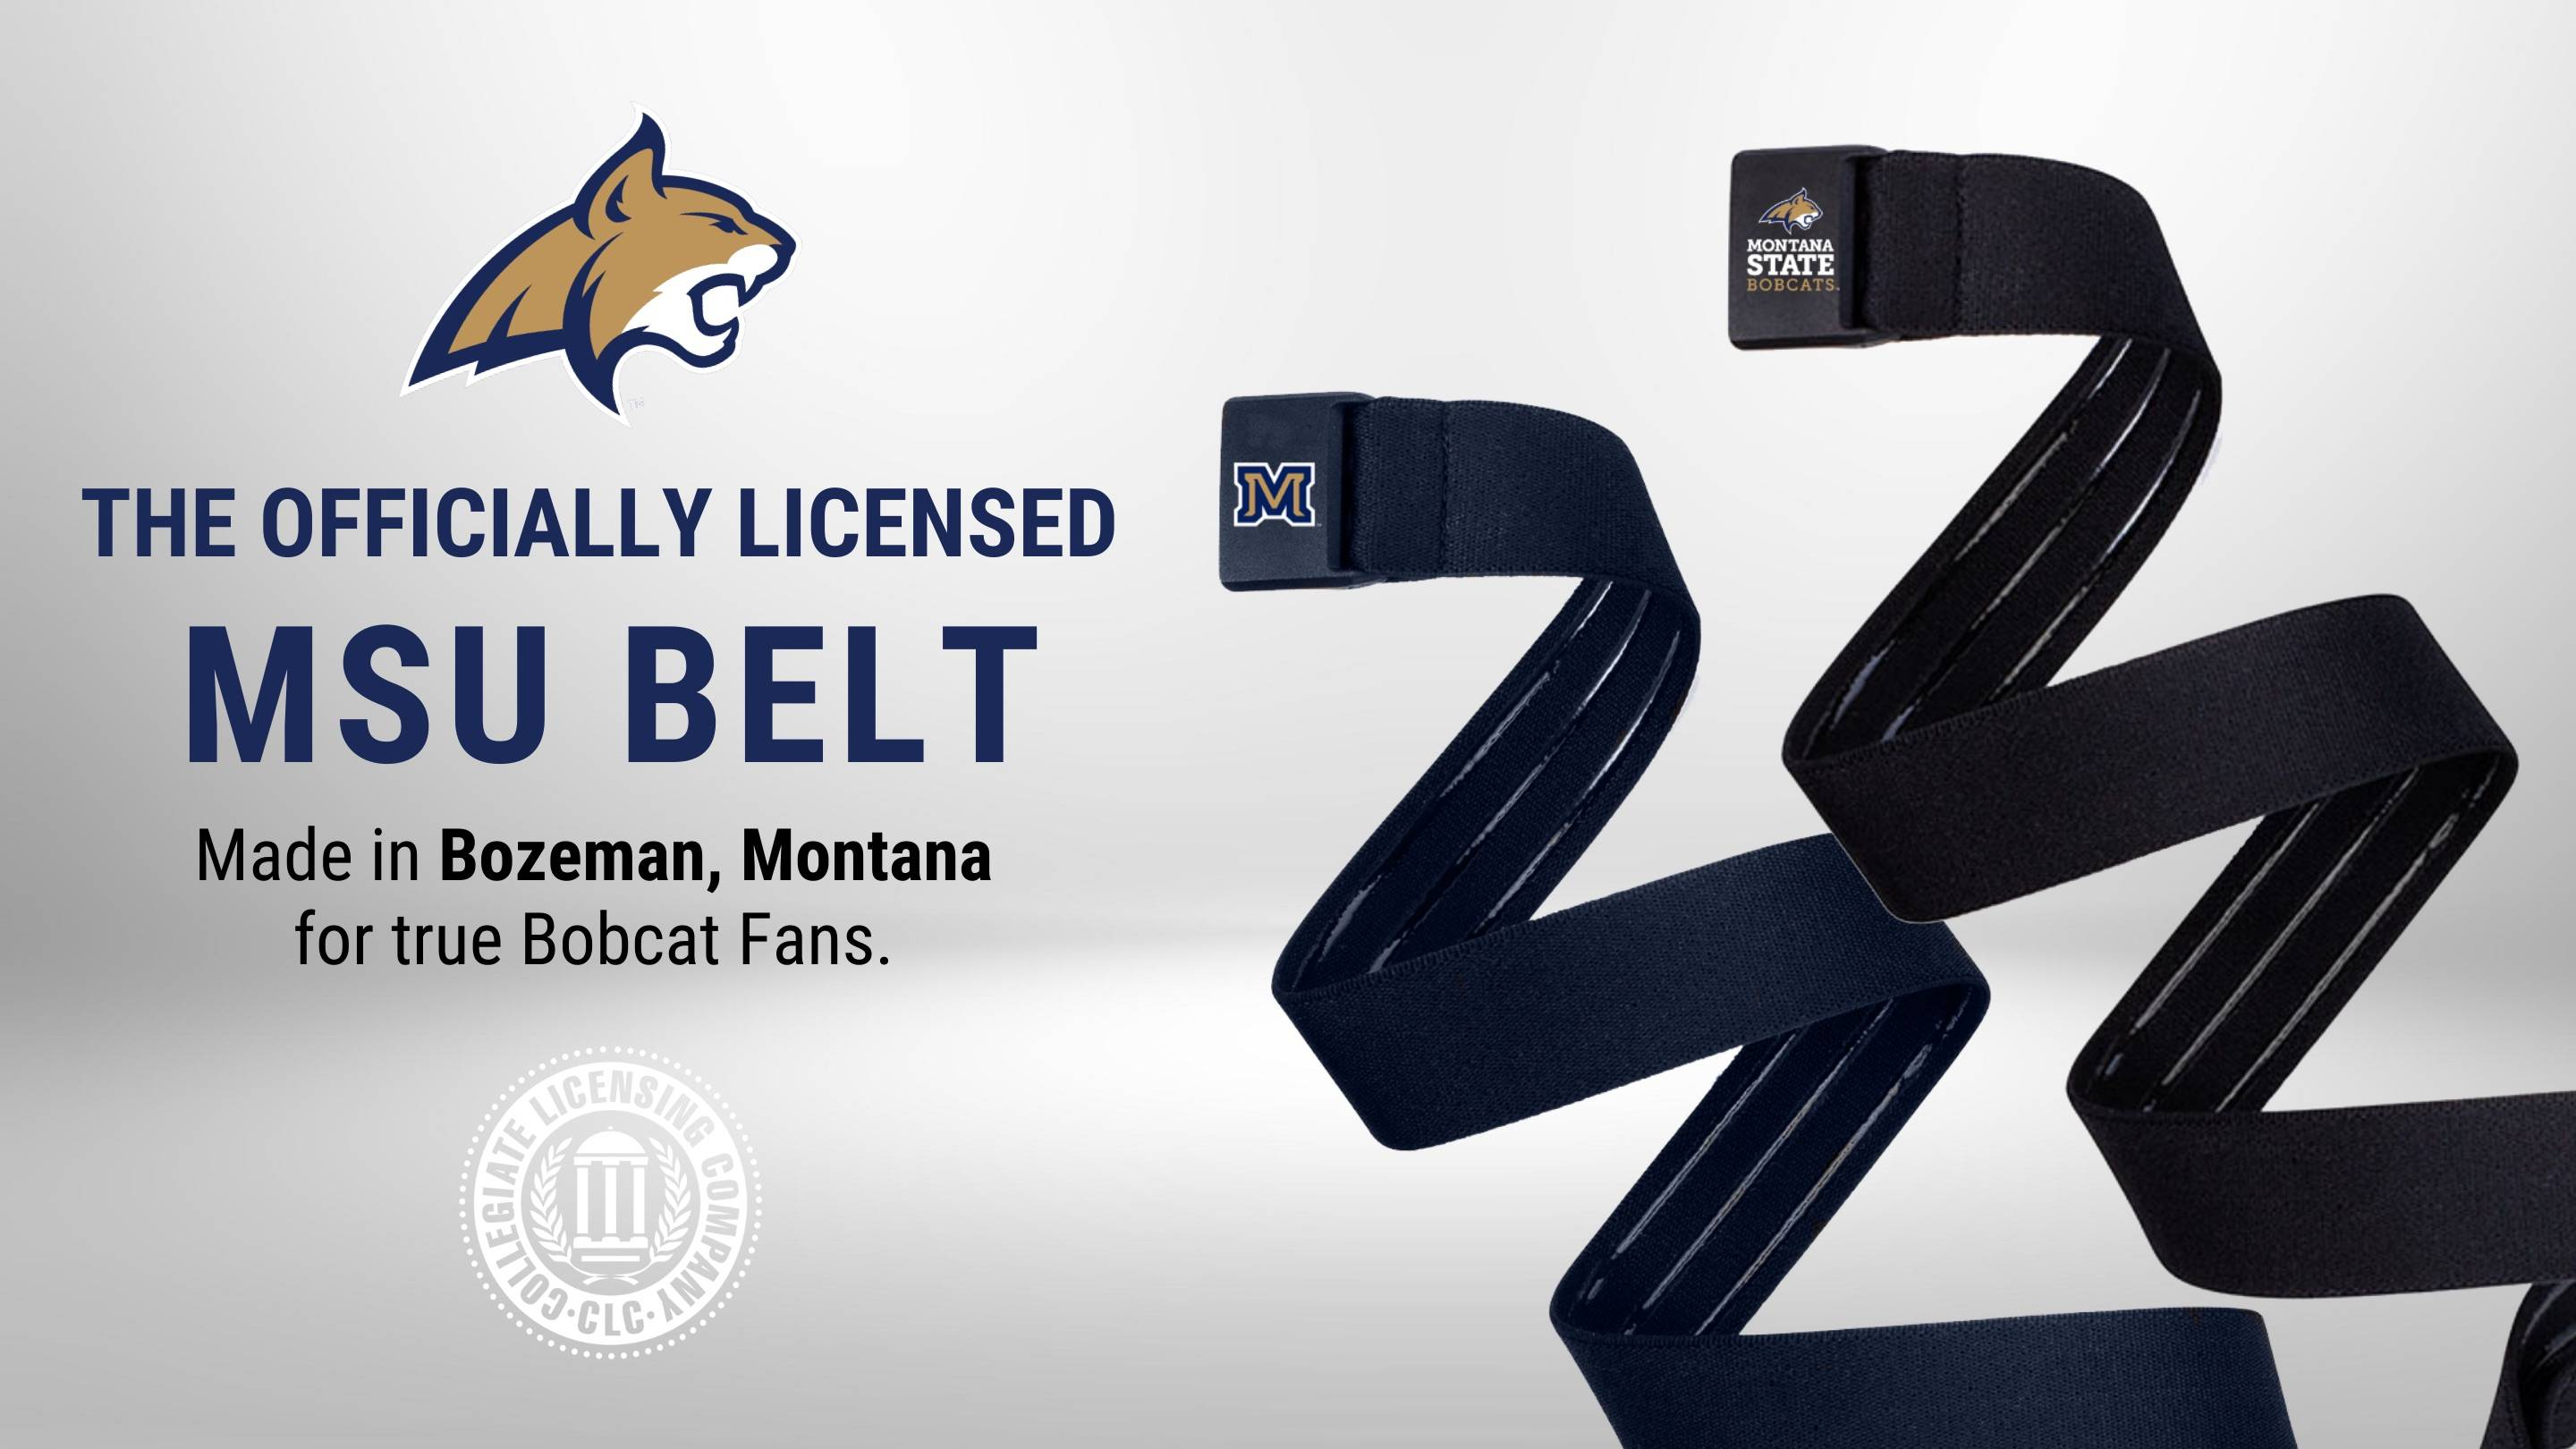 Image of the officially licensed MSU belt. Made in Bozeman, Montana for true Bobcat fans. Featuring JeltX Adjustable elastic belts in M buckle on a navy blue belt  and Montana State University Bobcats buckle on a black belt.